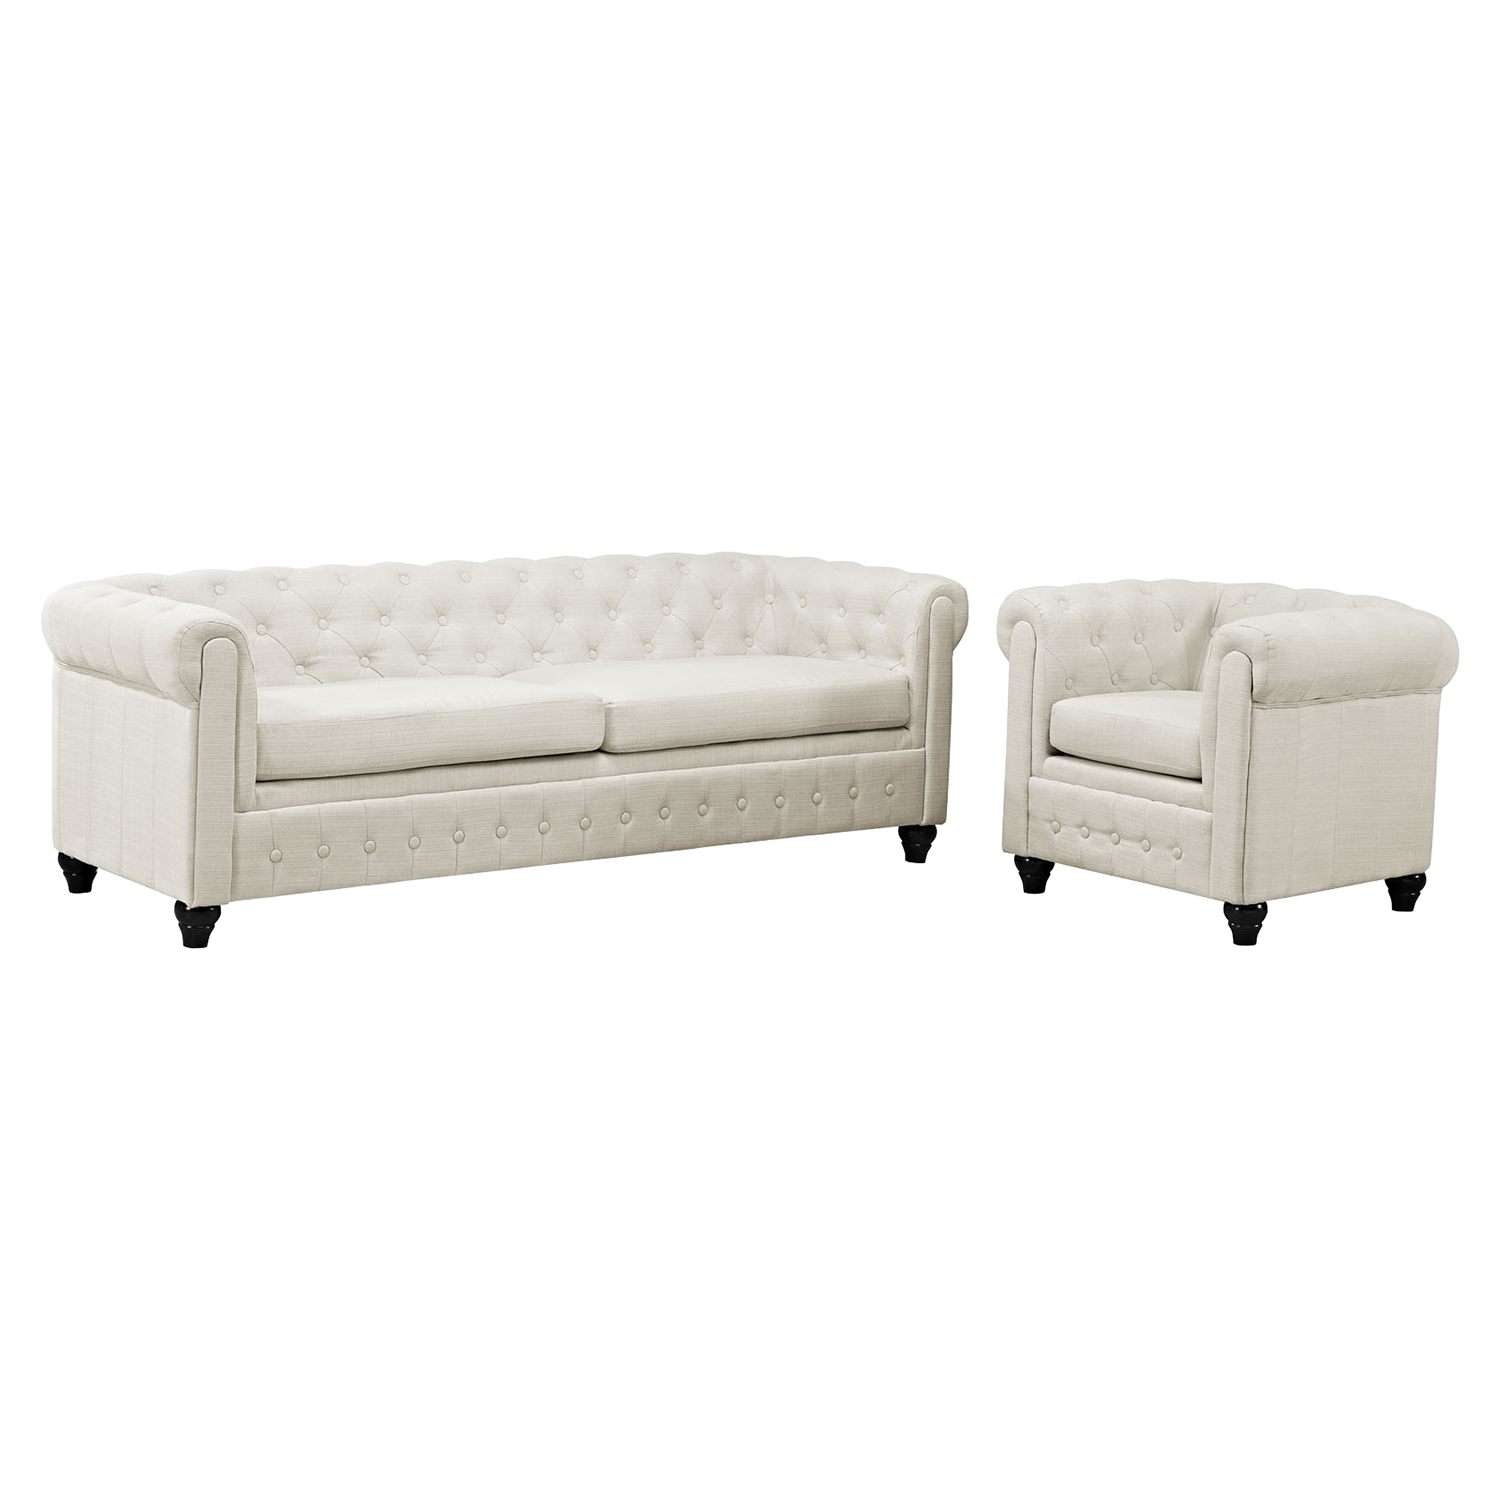 Earl 2 Pieces Sofa Set - Fabric, Beige, Button Tufted - EEI-1778-BEI-SET